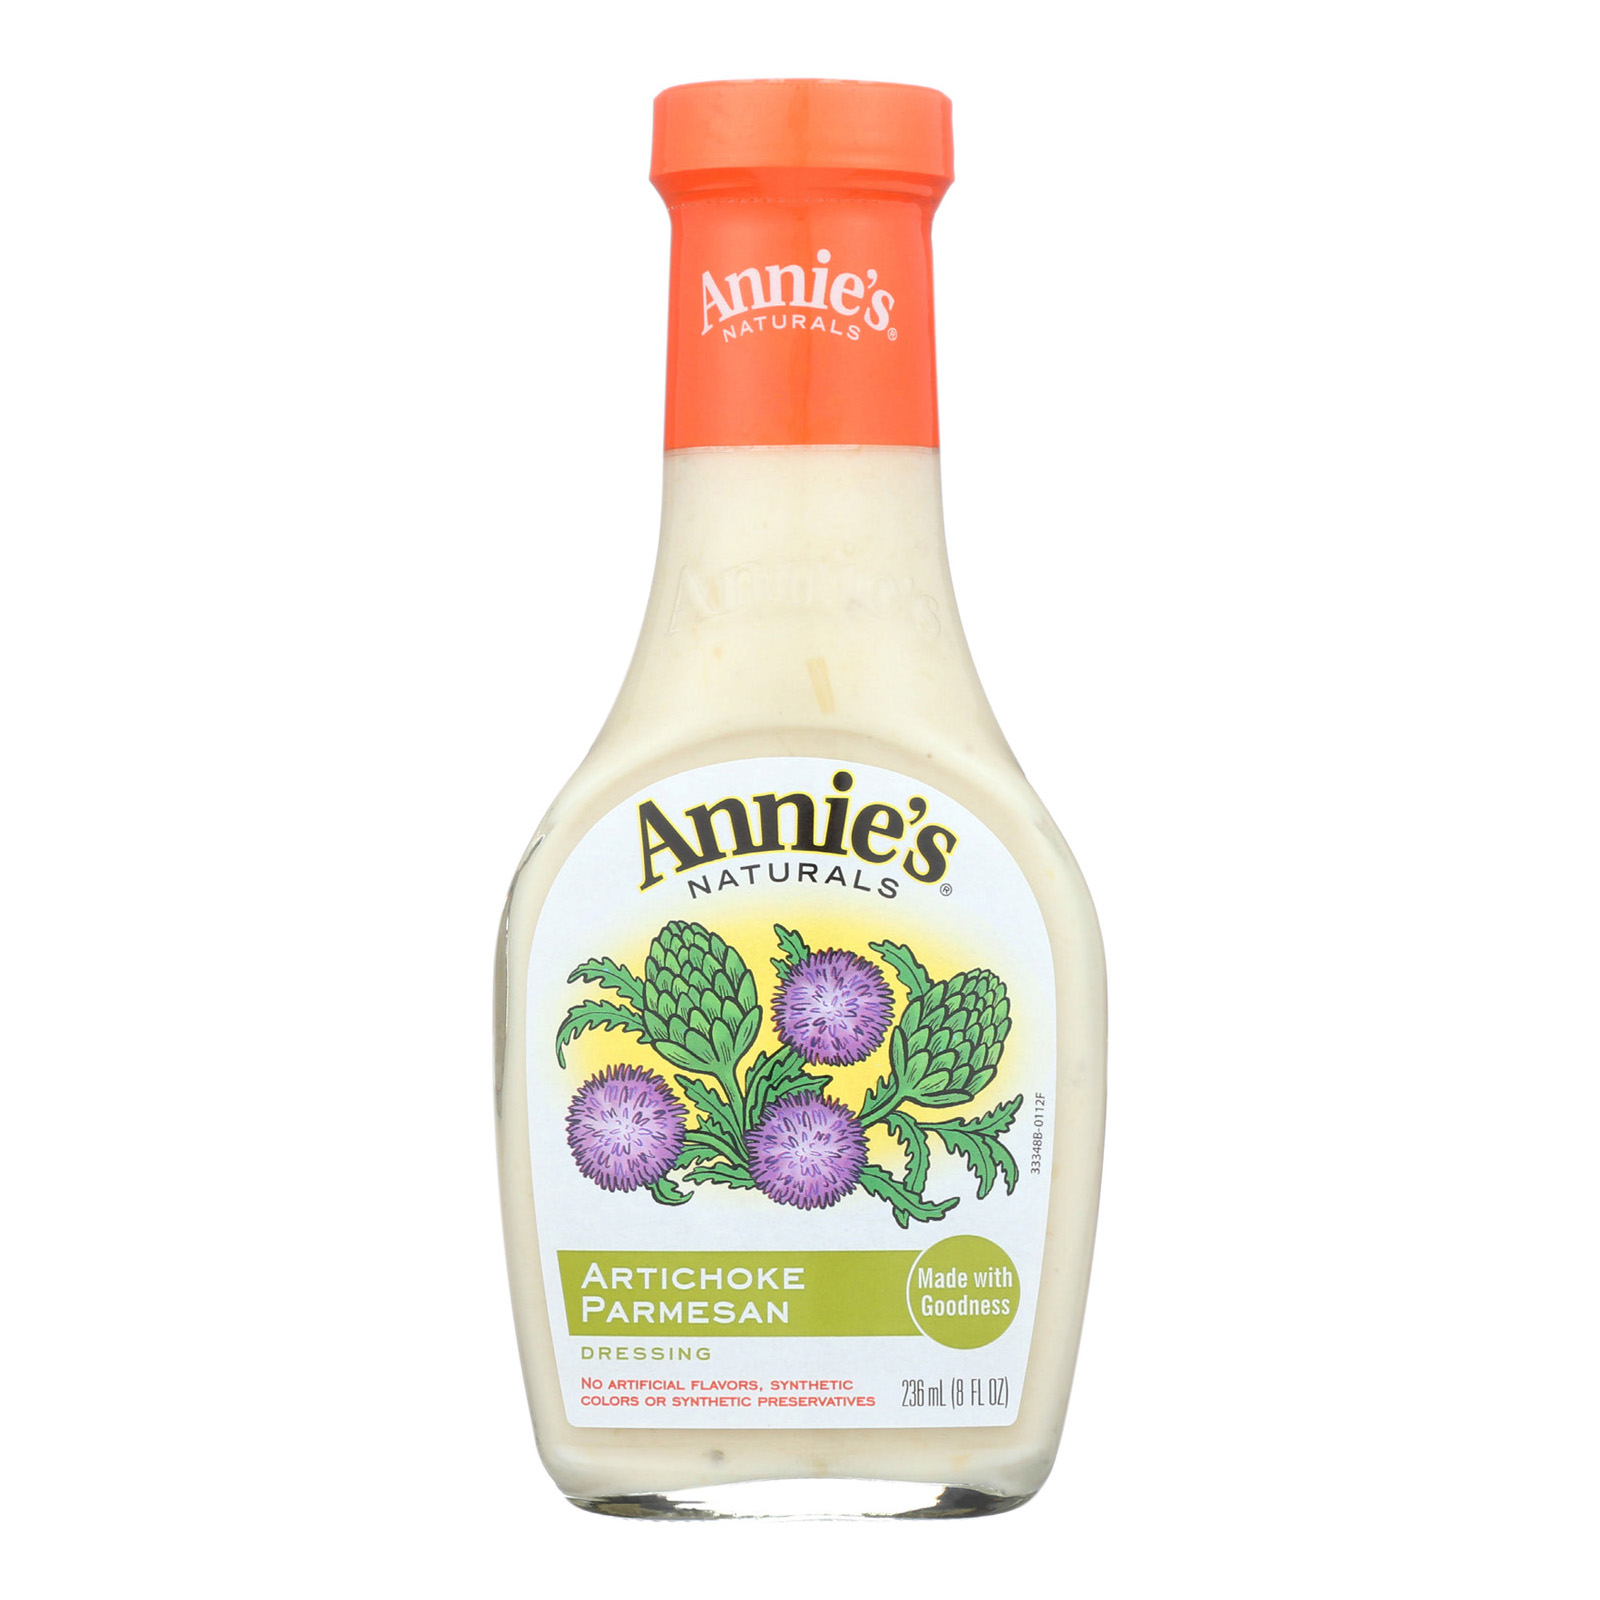 Annie's Naturals Dressing Artichoke Parmesan - Case of 6 - 8 fl oz.